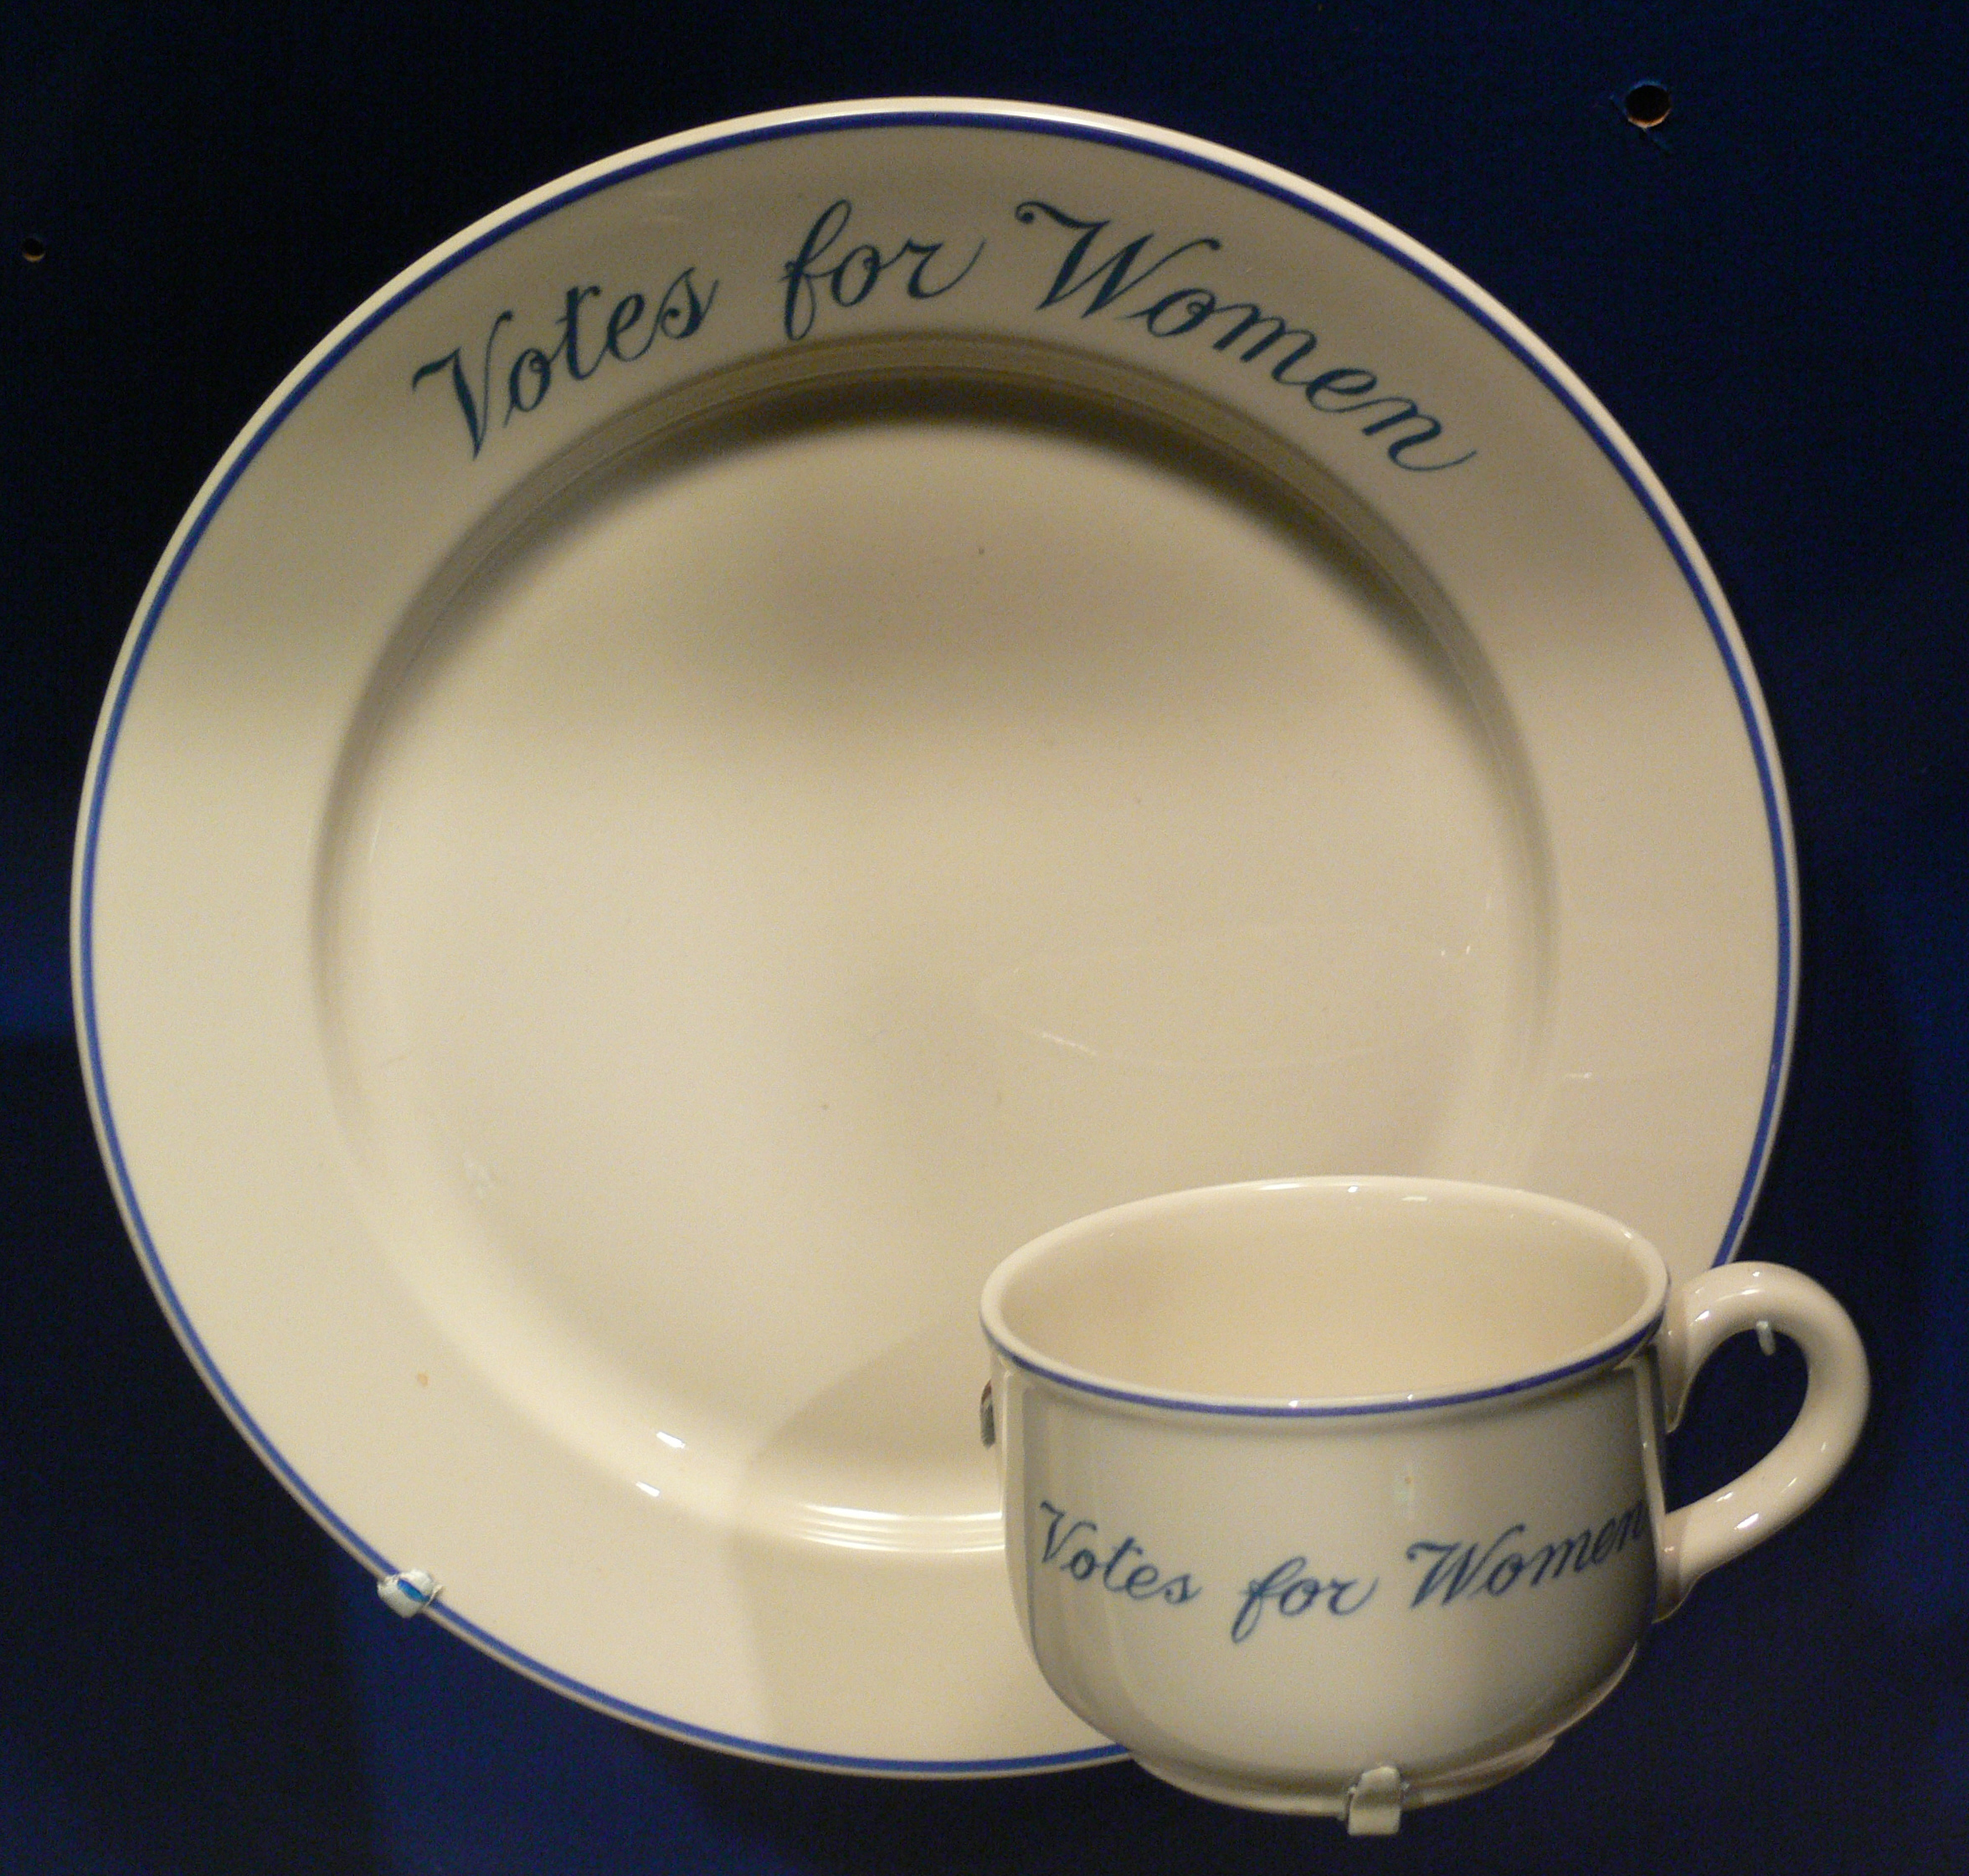 file votes for women cup and plate 1910s womens museum jpg